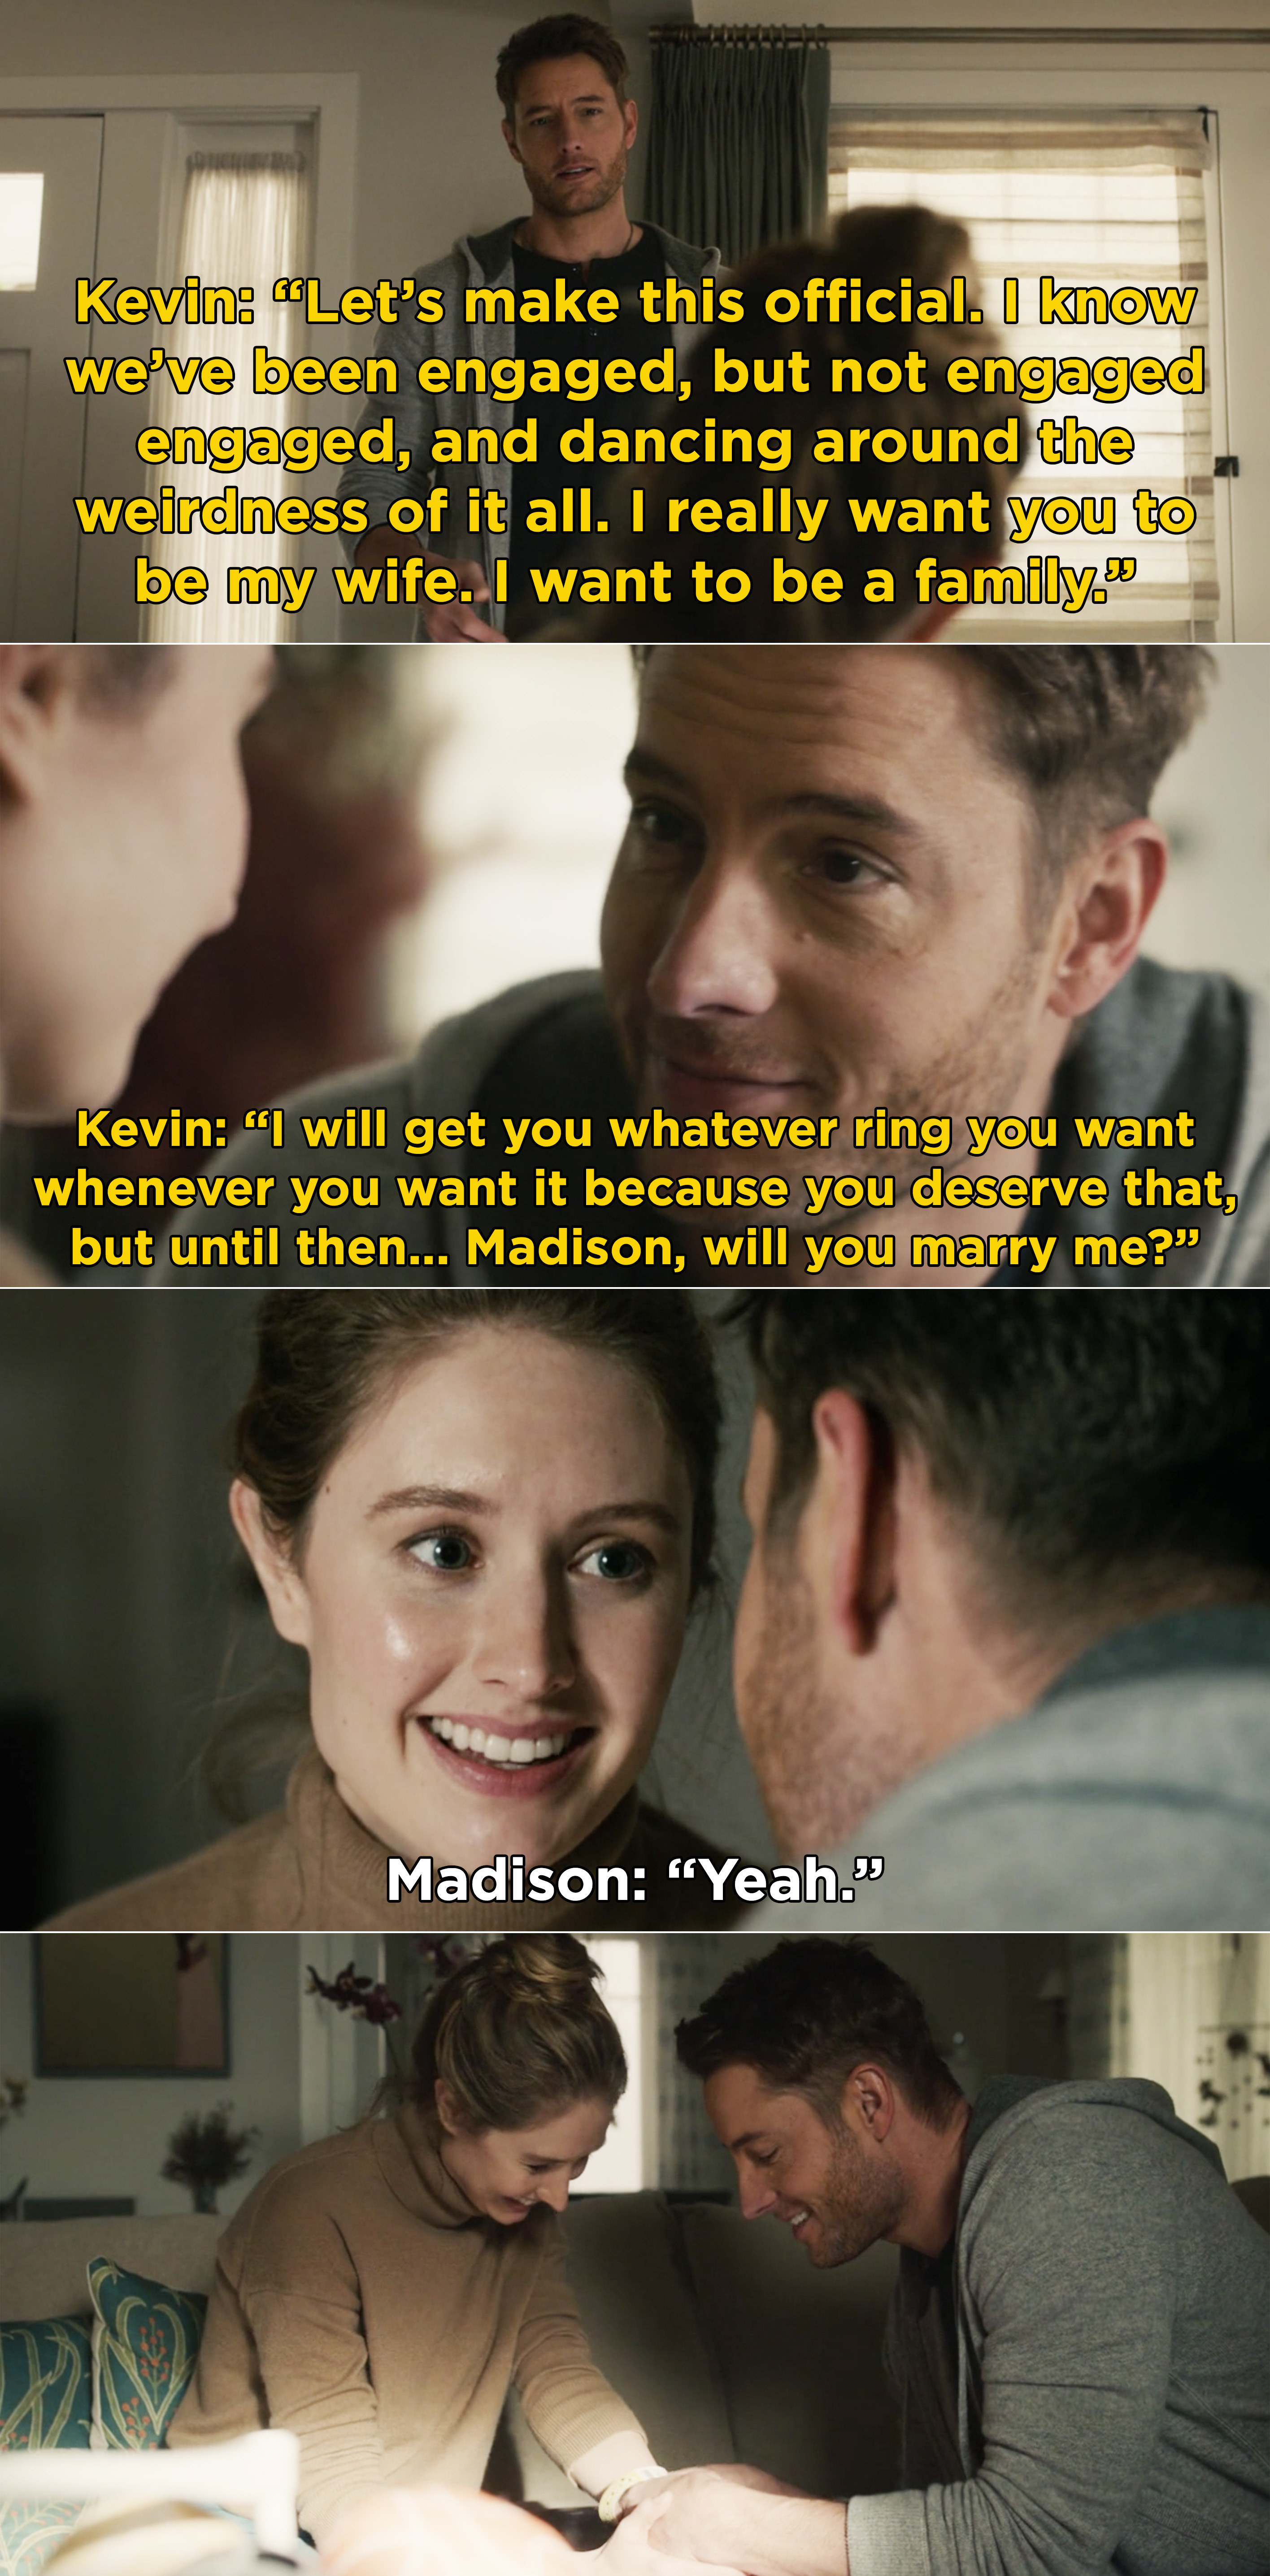 Kevin telling Madison that he wants them to be a family and then proposing